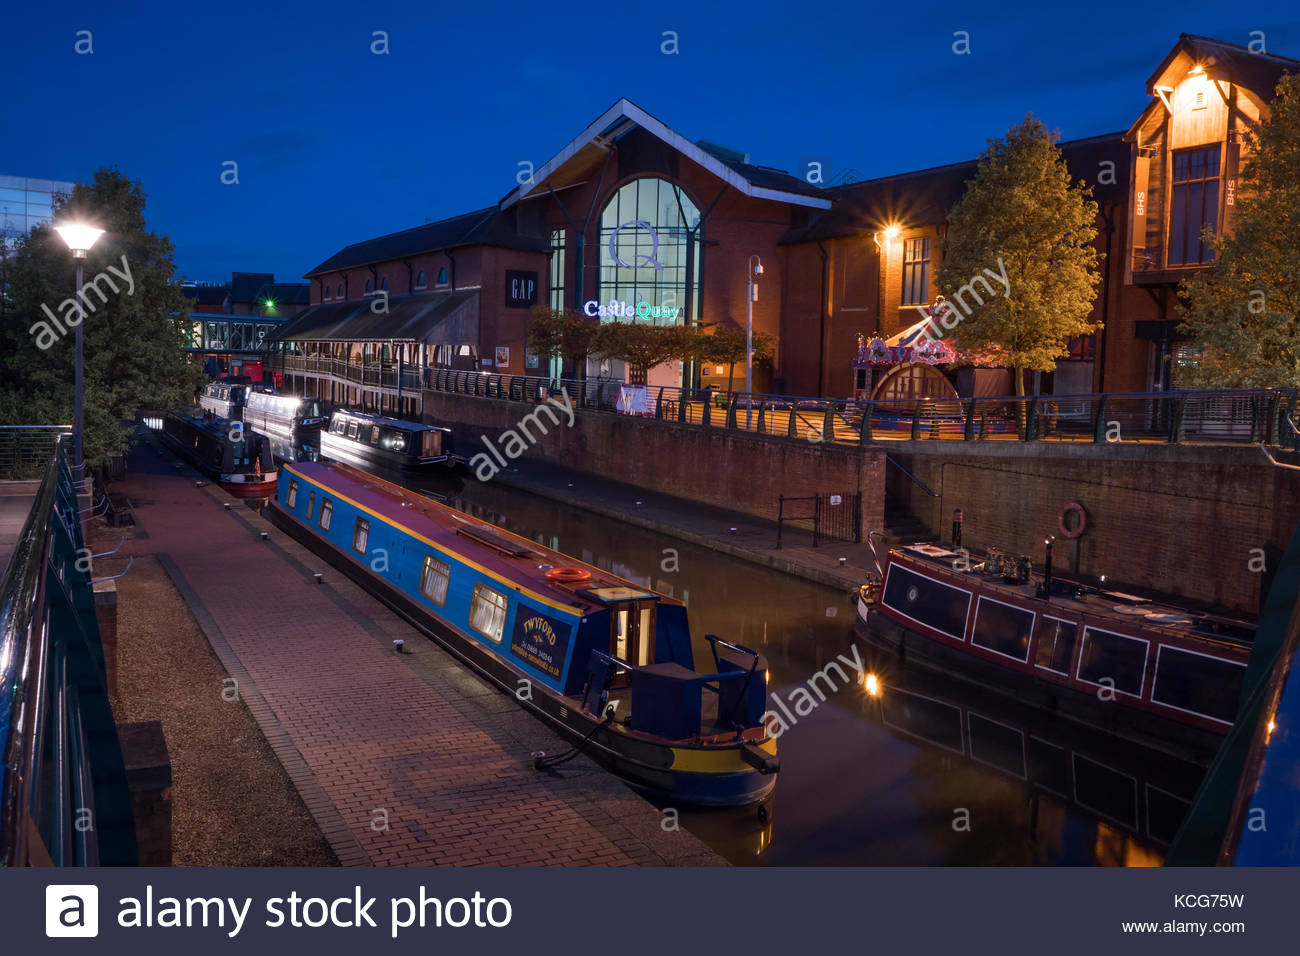 Canal boats moored on the Oxford Canal at Castle Quay Shopping Centre Banbury Oxfordshire England at night - Stock Image